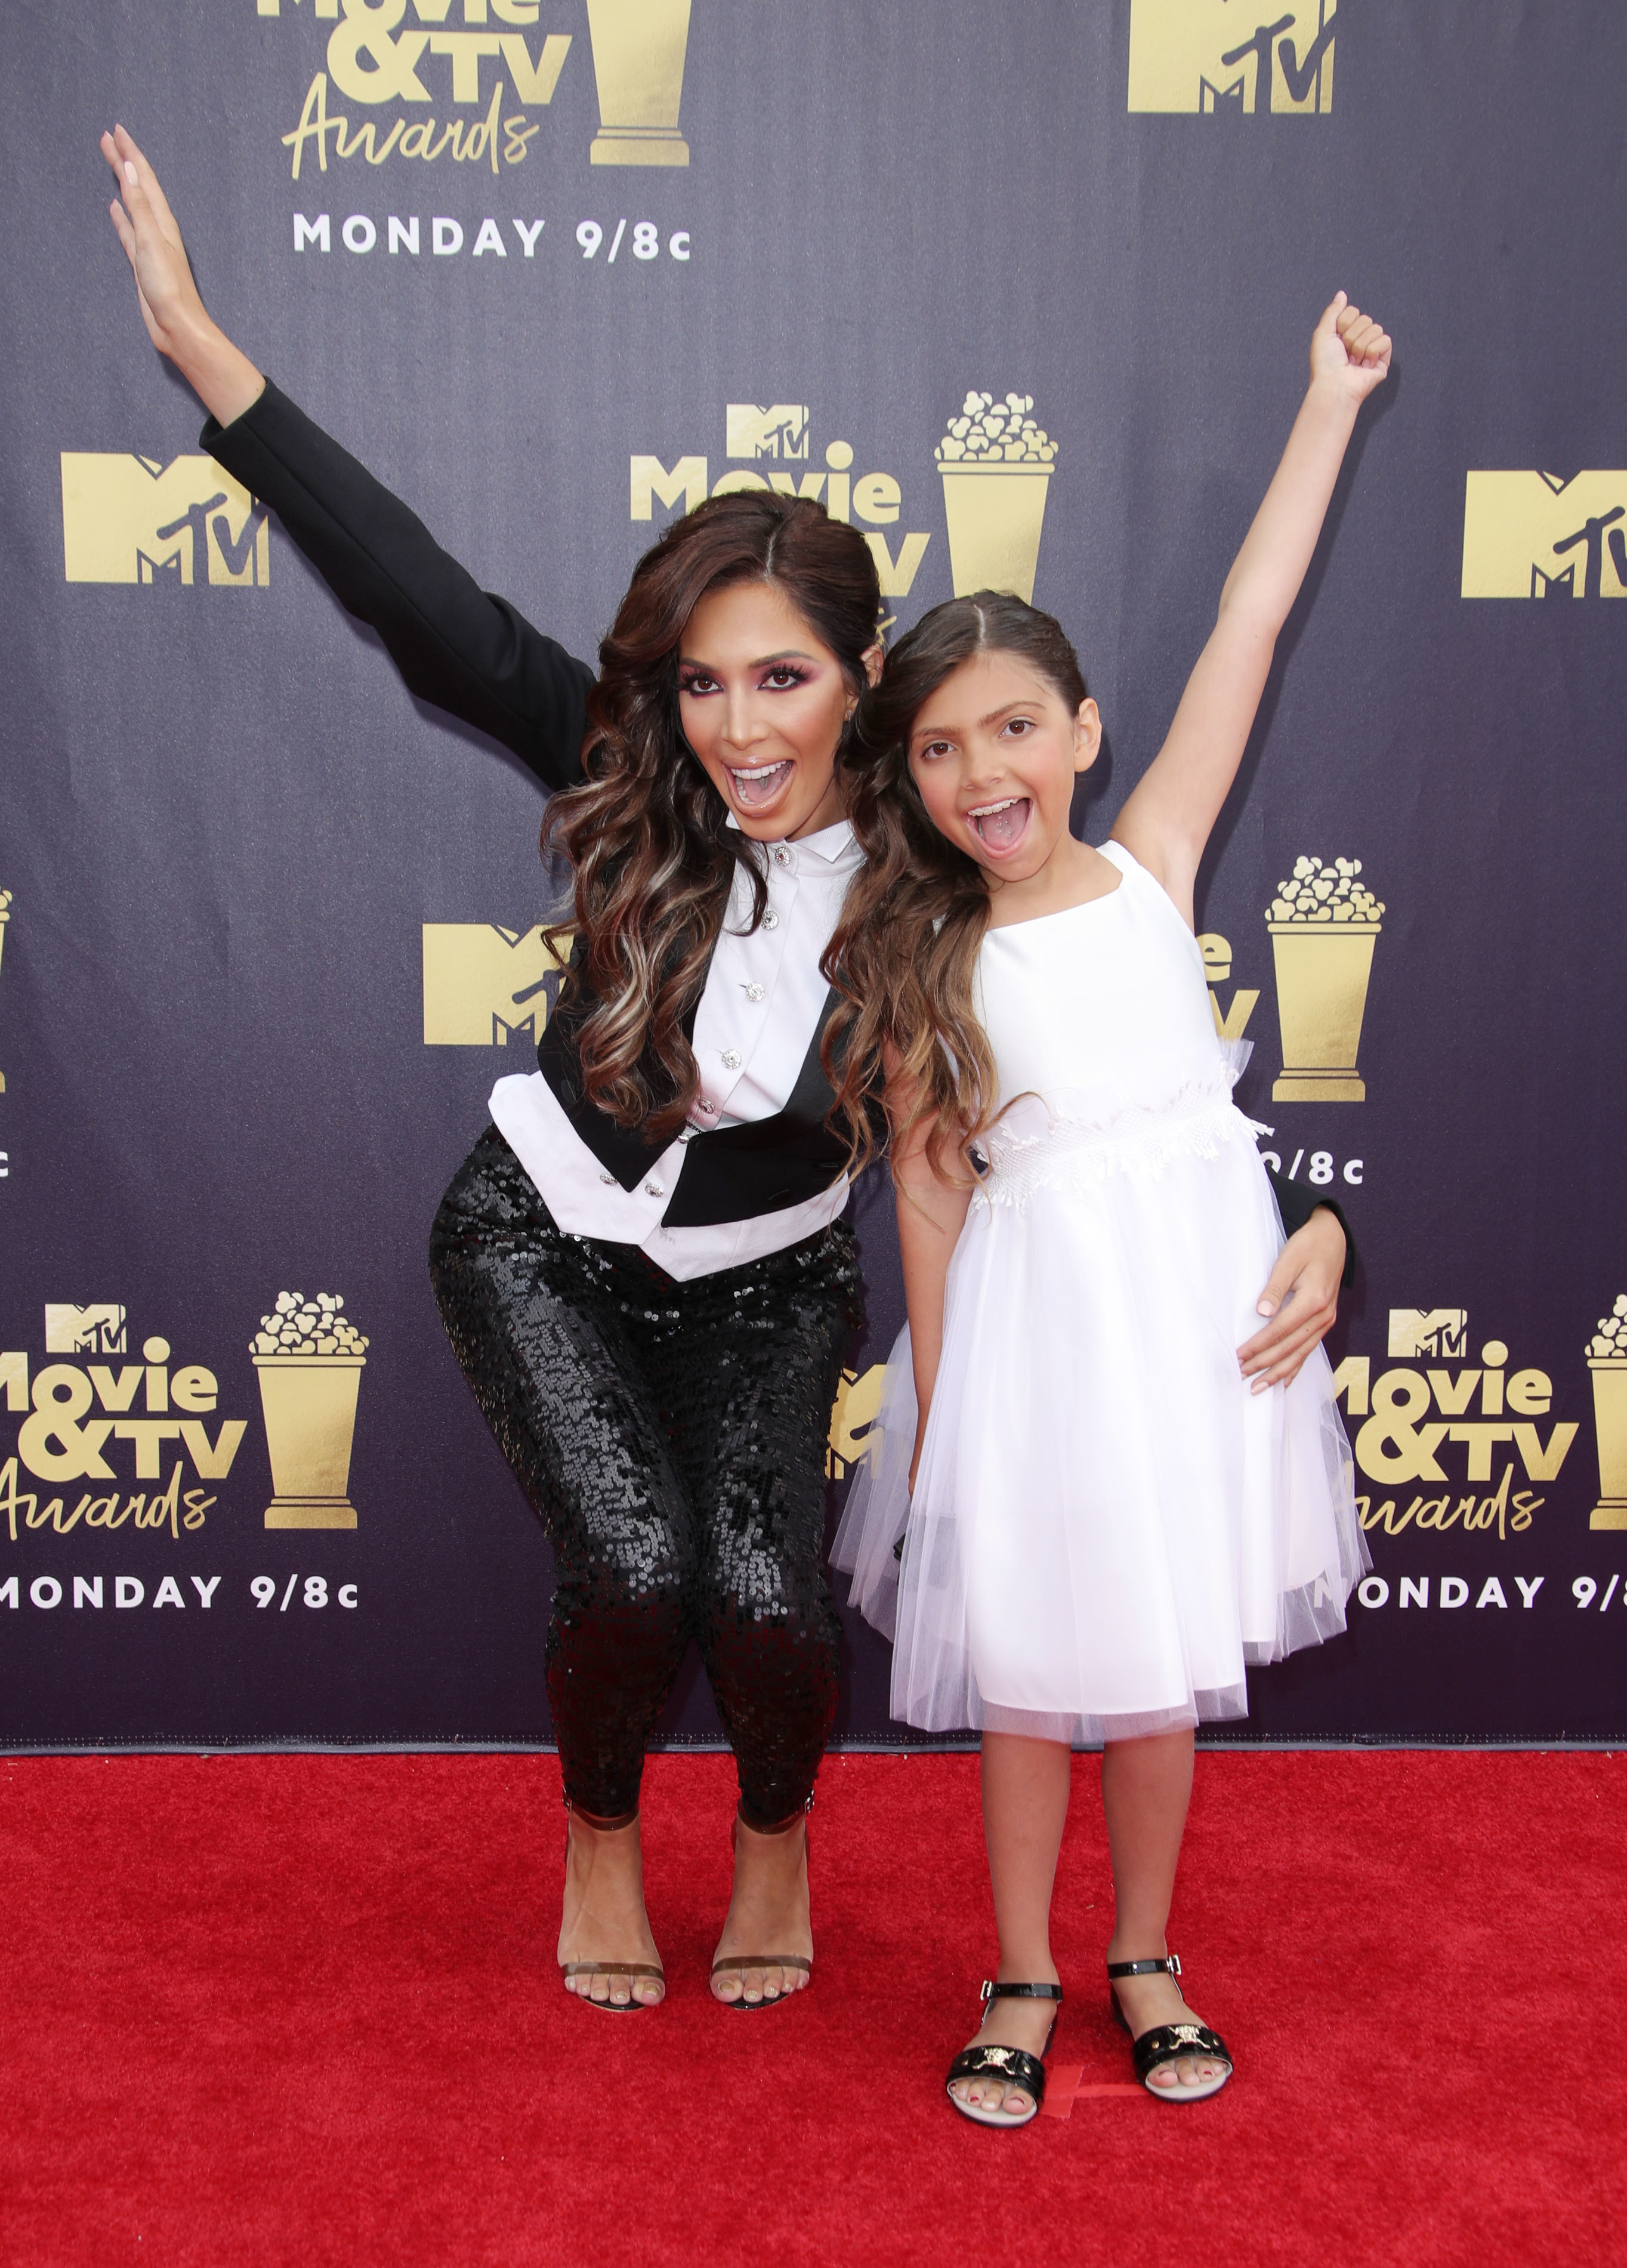 Farrah Abraham and Sophia Abraham  were all smile while attending the MTV Movie & TV Awards in Los Angeles, CA on June 16, 2018.